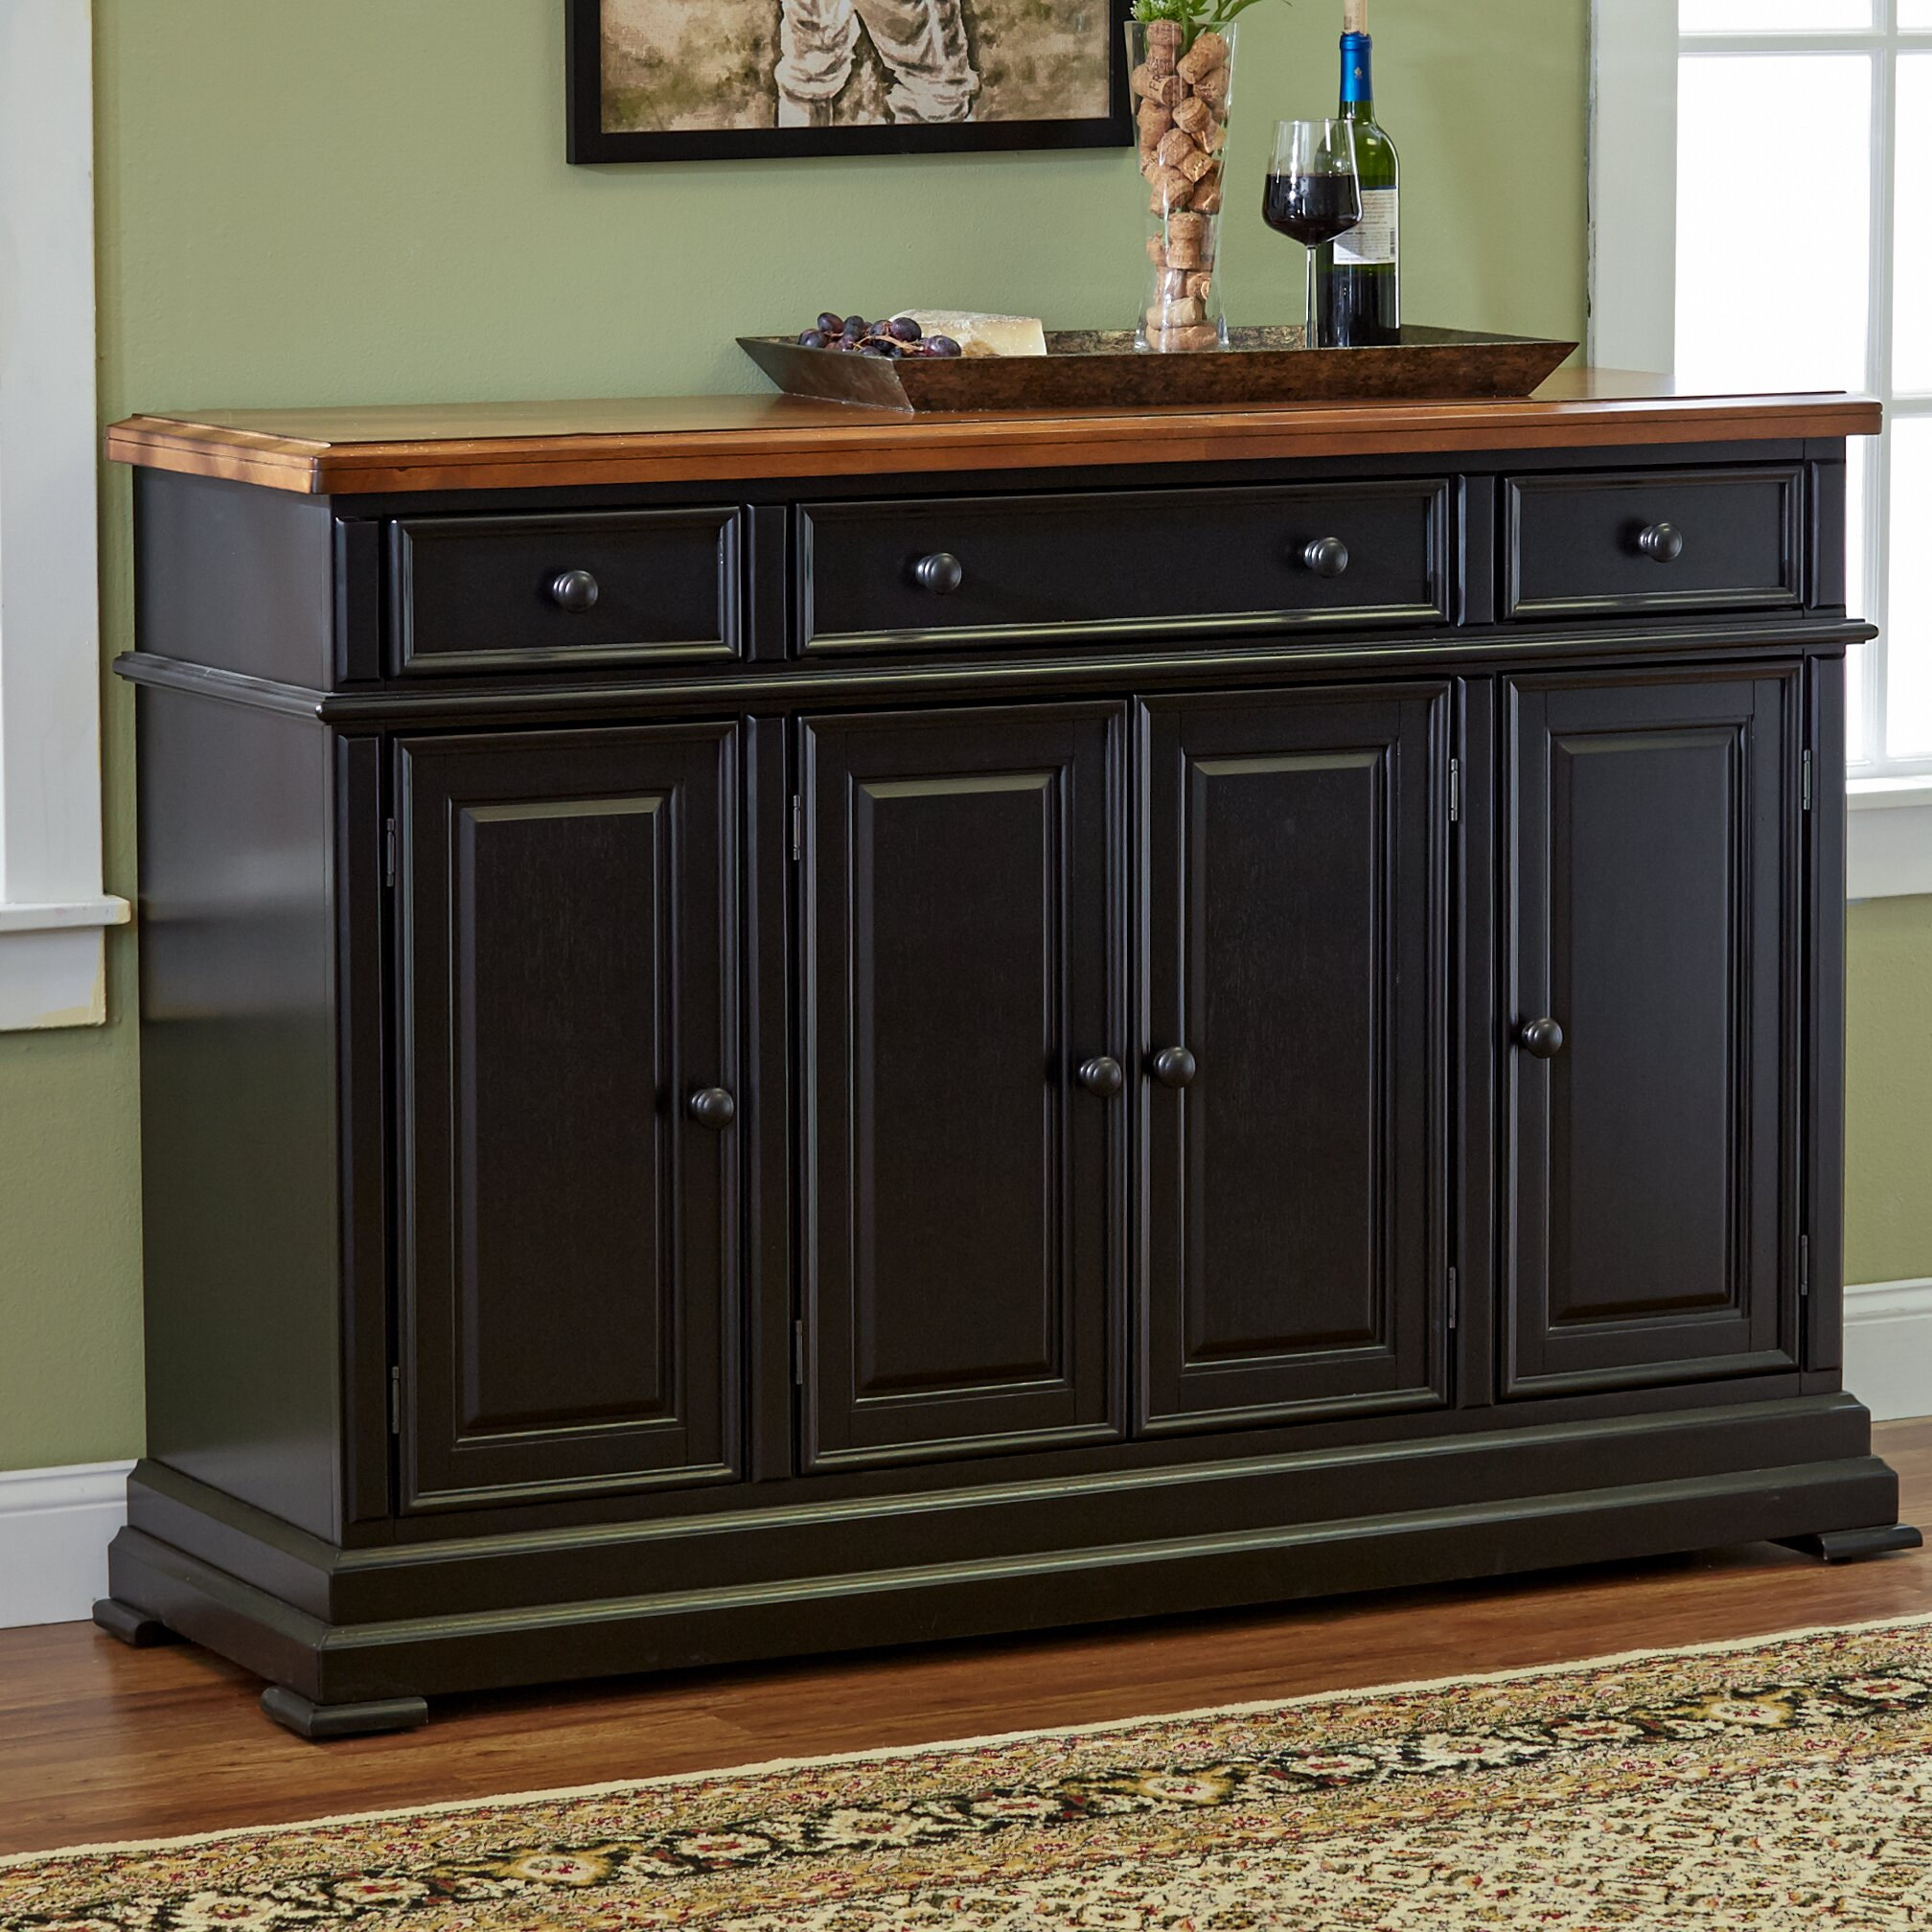 Living Room Sideboards And Cabinets Cabinet Equipped Sideboards Buffets Youll Love Wayfair